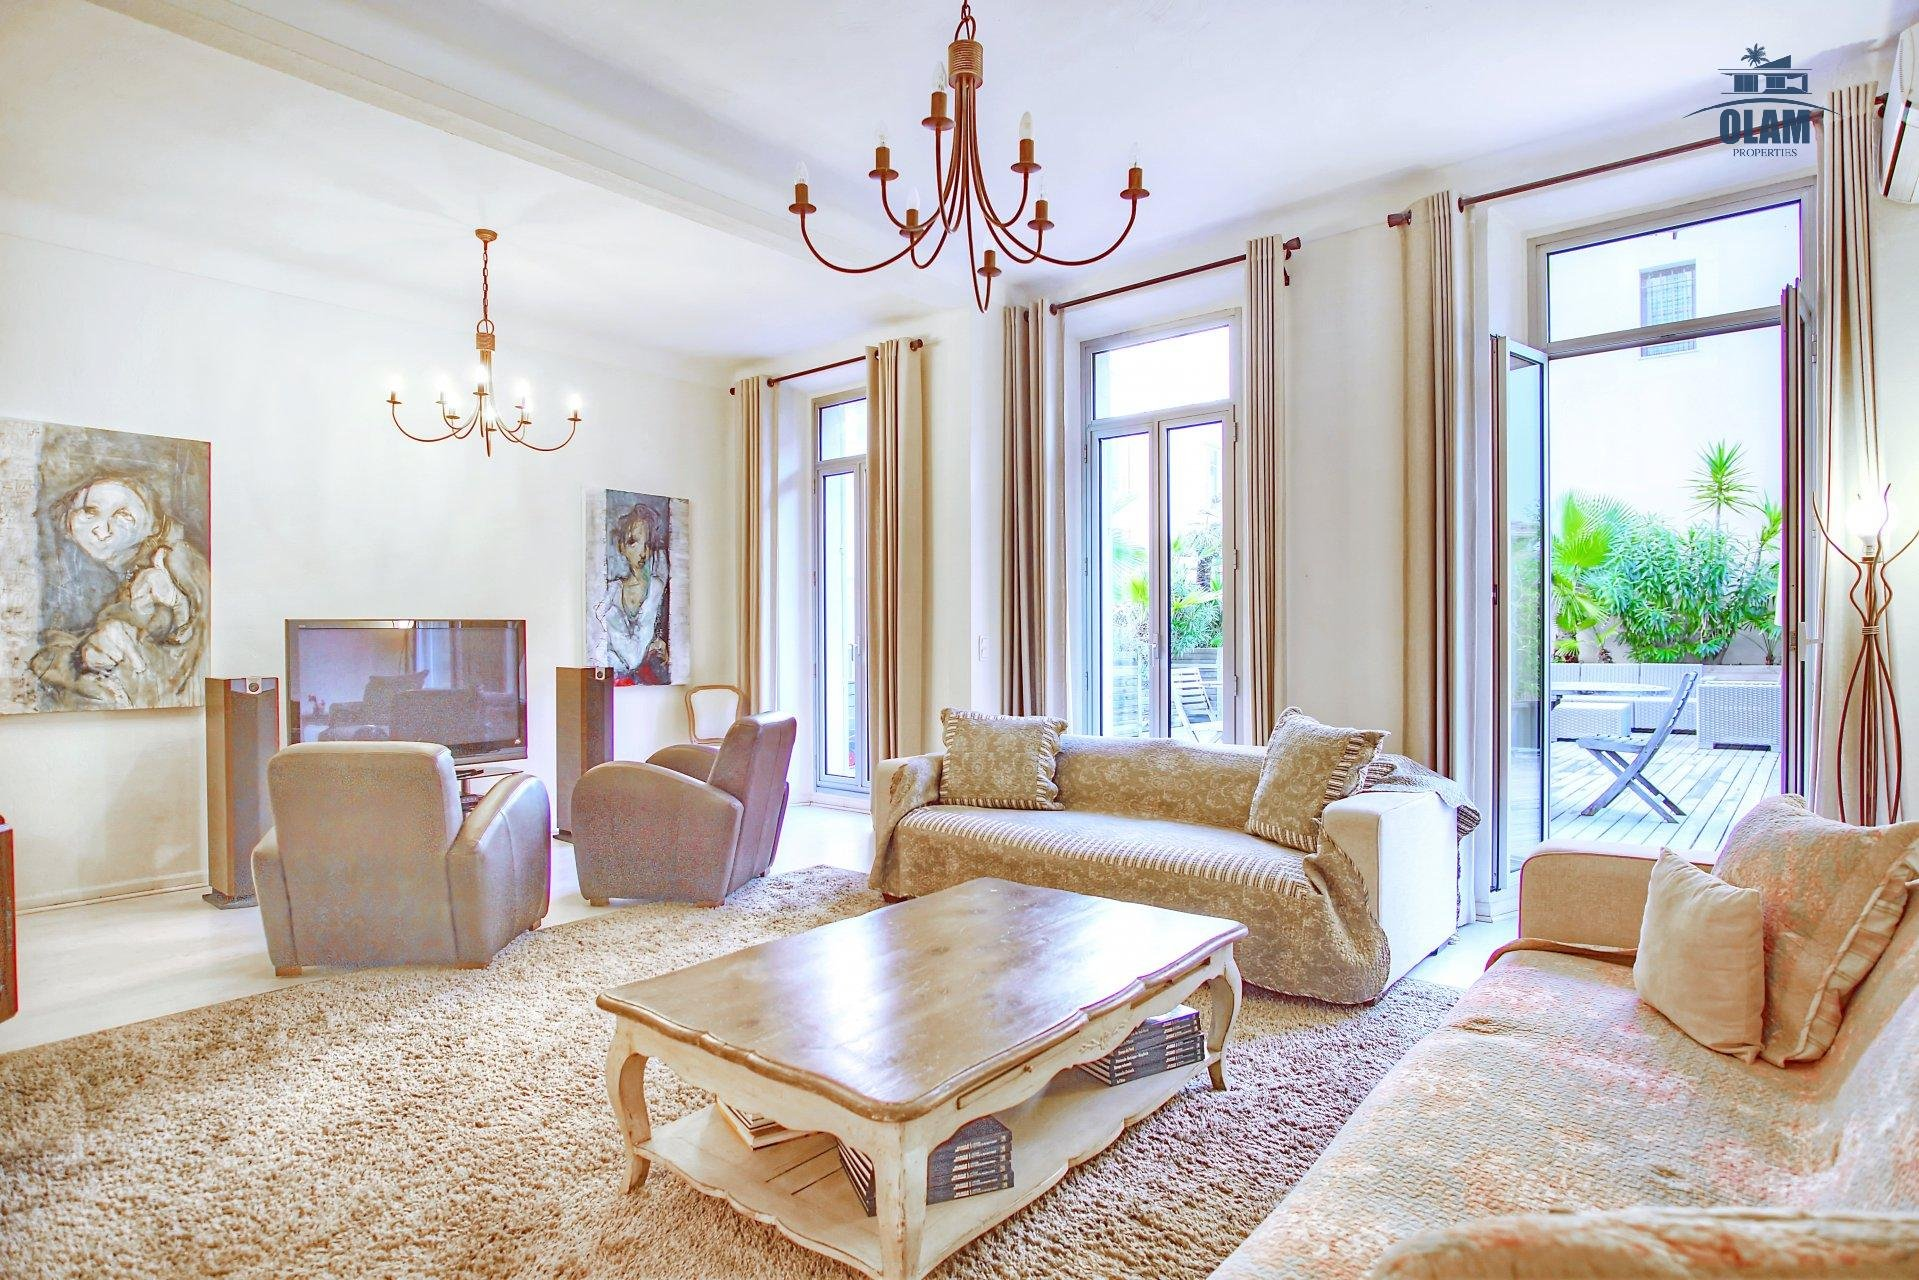 GRAND 3P 100M² CENTRE CANNES PALAIS A 3MN - APP GC